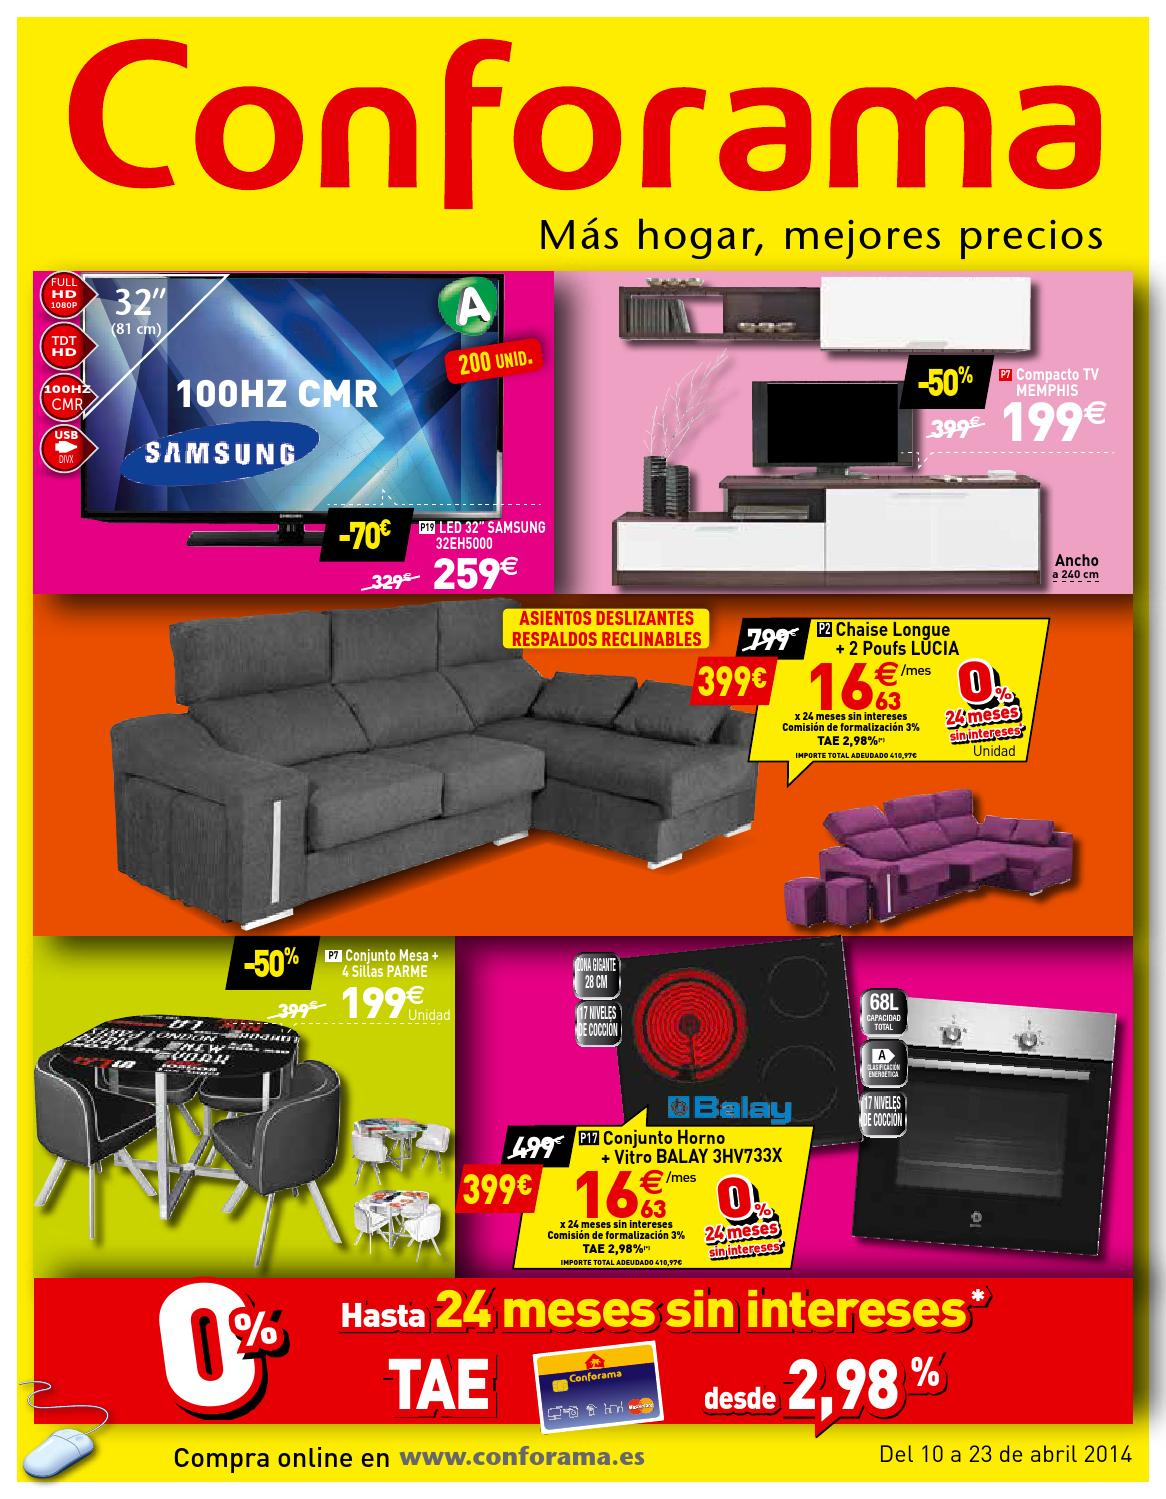 Conforama catalogo 10 23abril2014 by catalogopromociones for Sofa lucia conforama